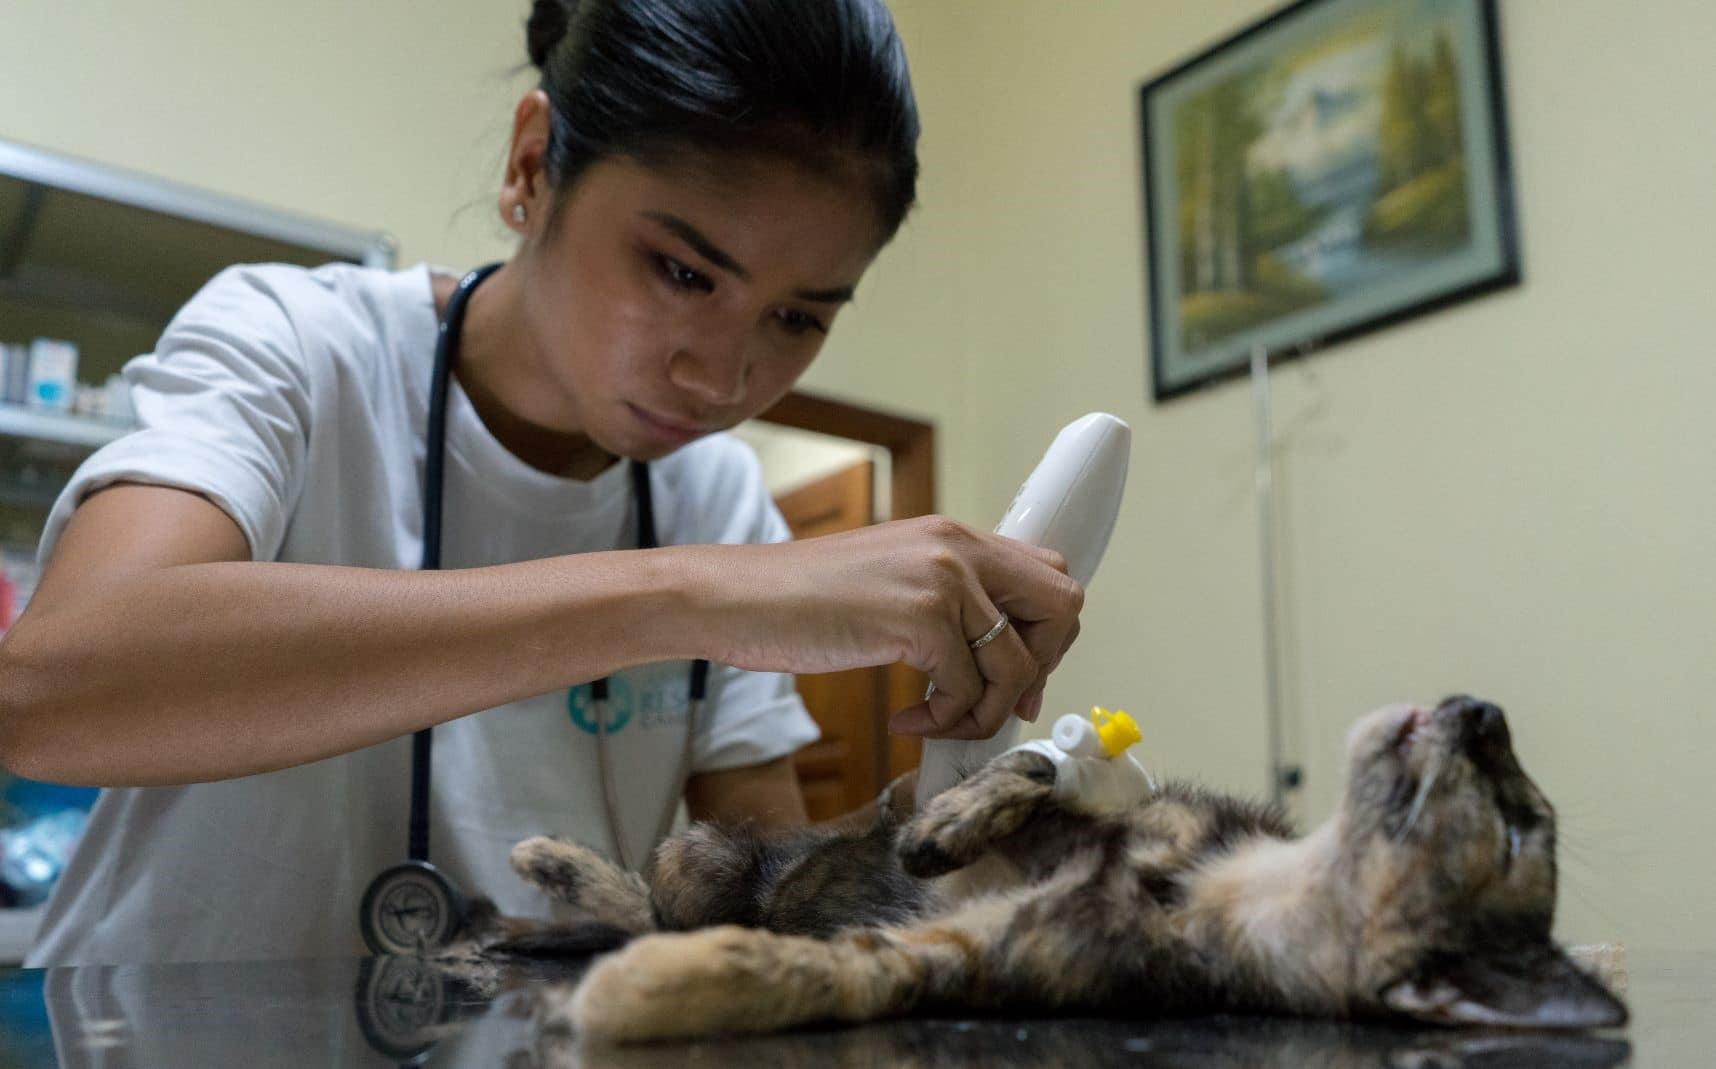 Helping Cats and Dogs Cambodia